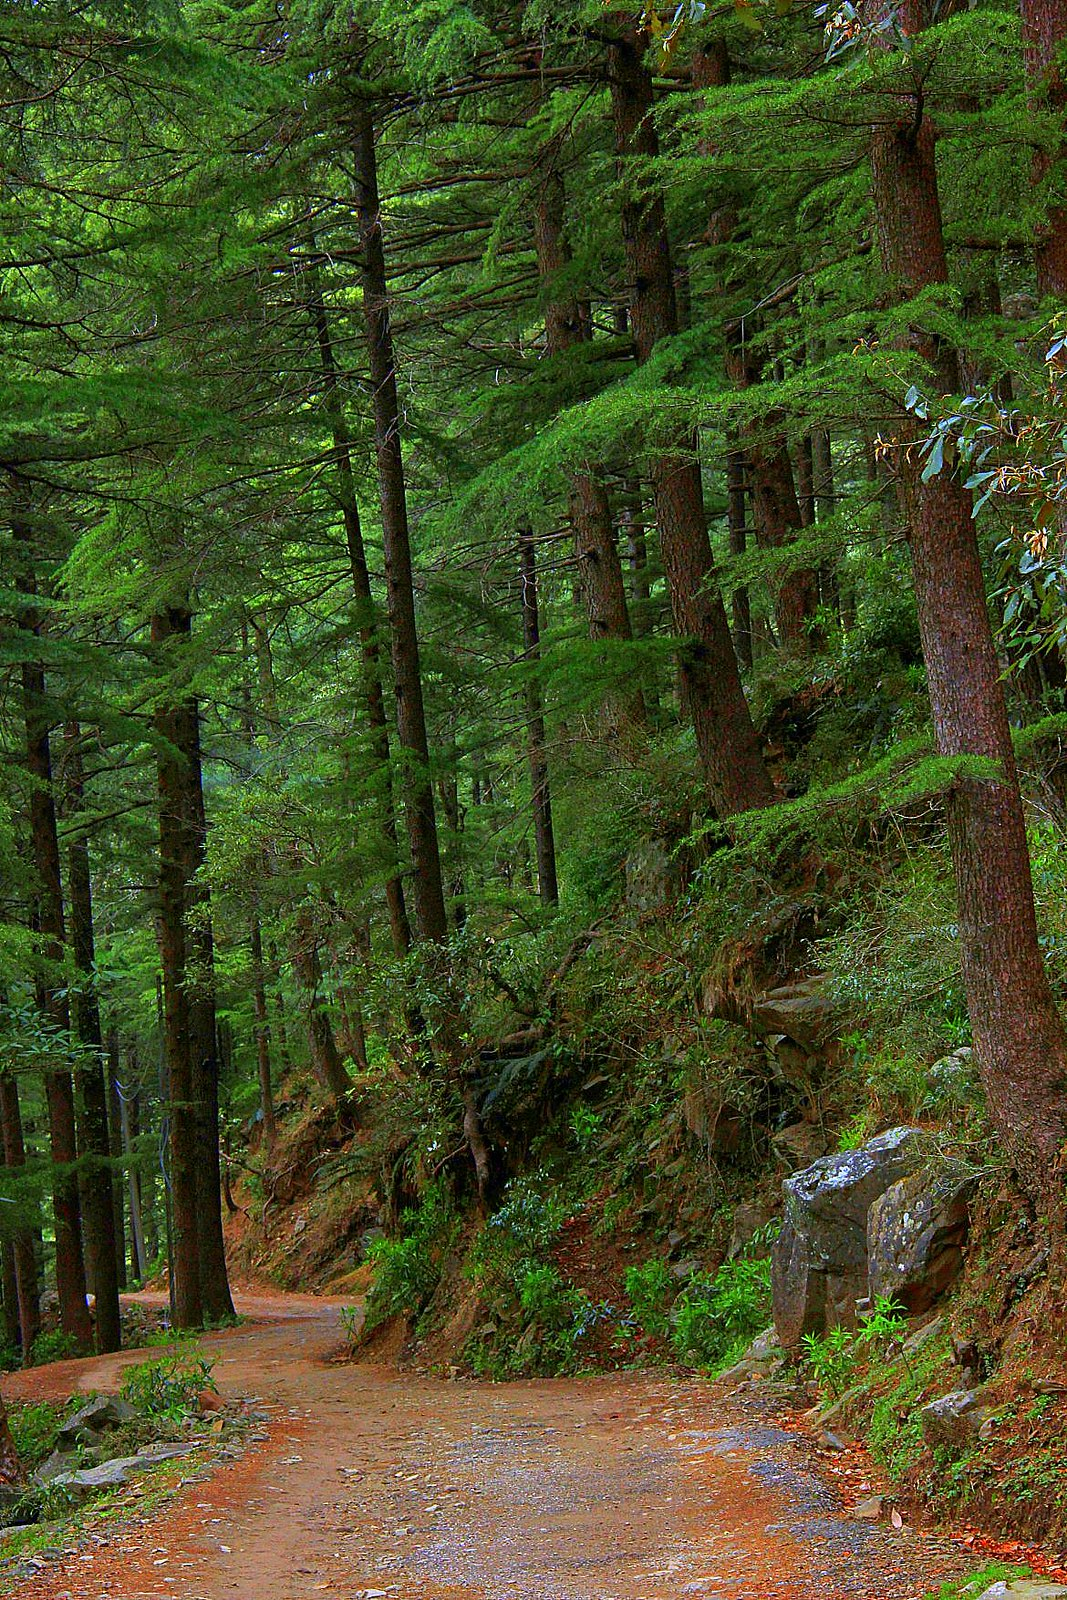 The pine forests around Dharamkot